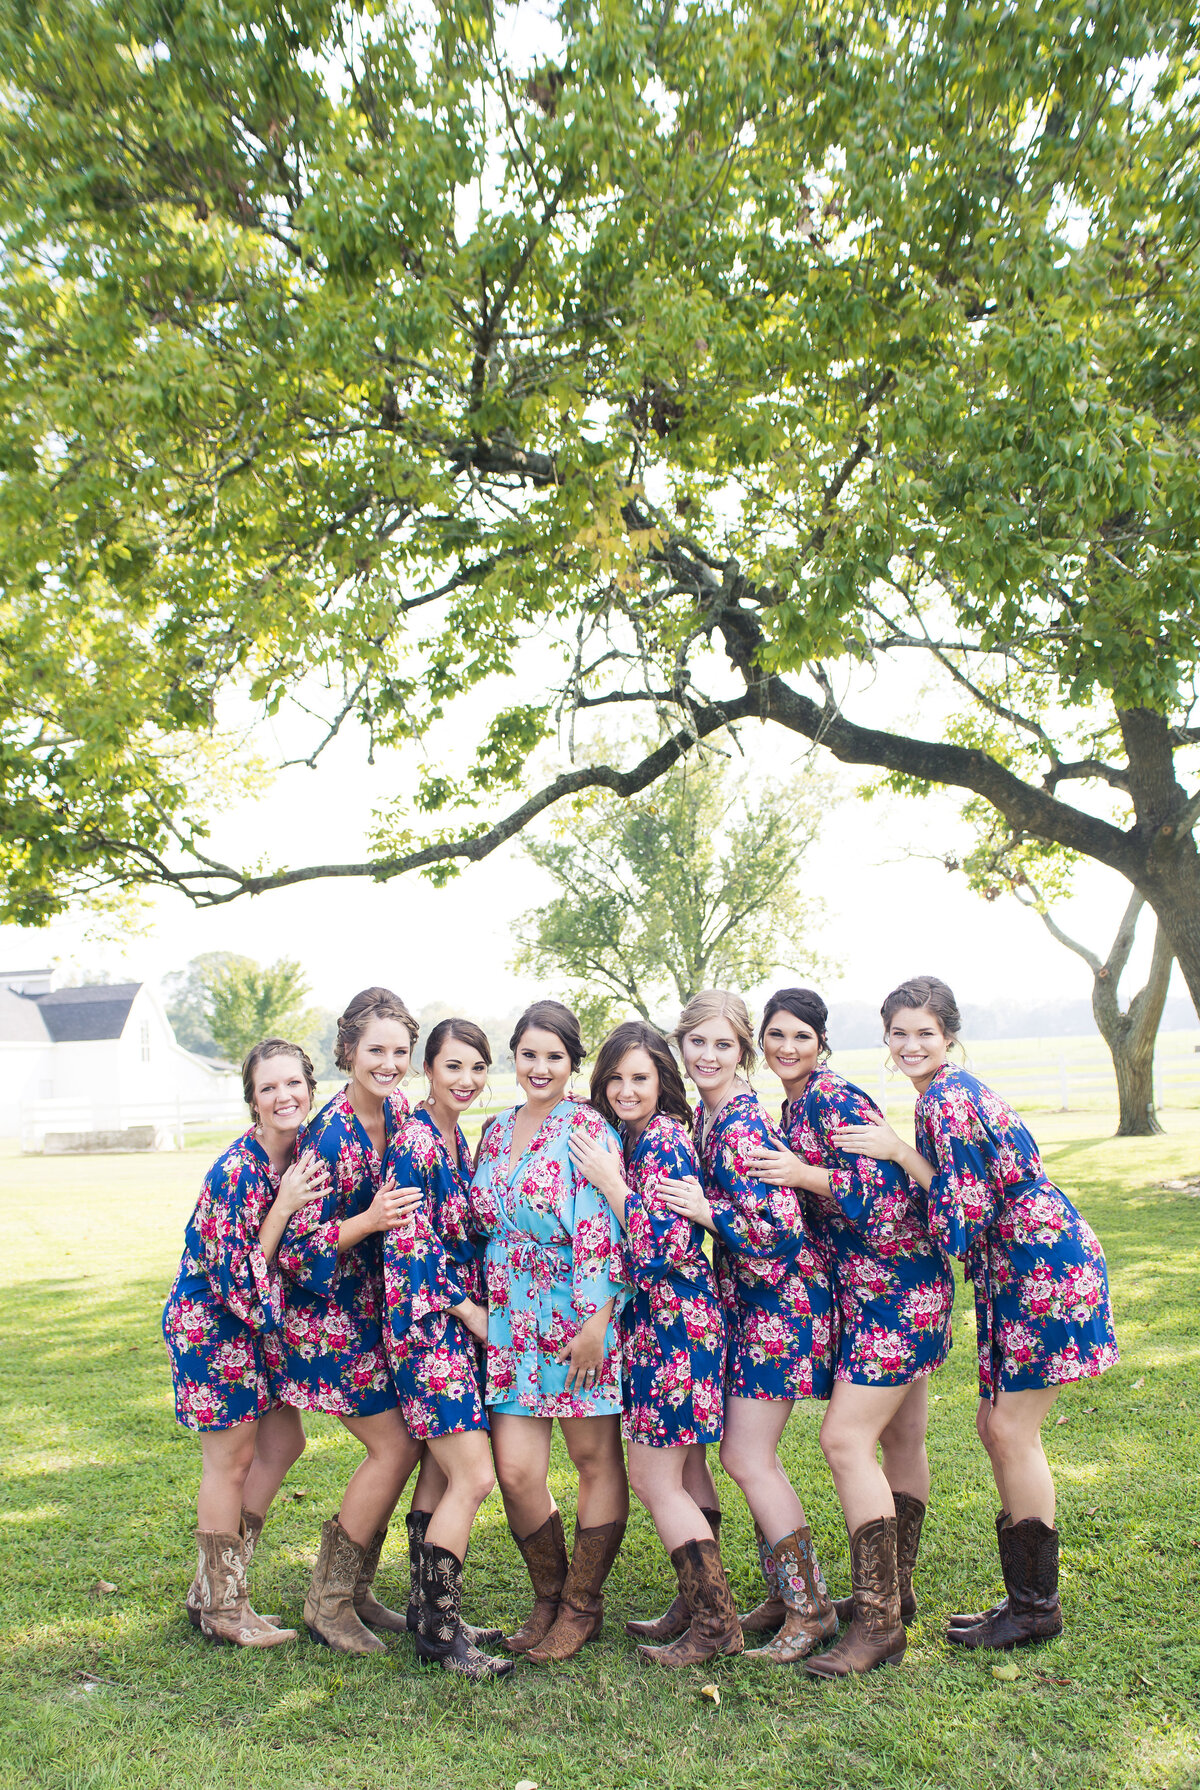 A gorgeous bridal party standing together in floral robes and cowgirl boots for a photo op